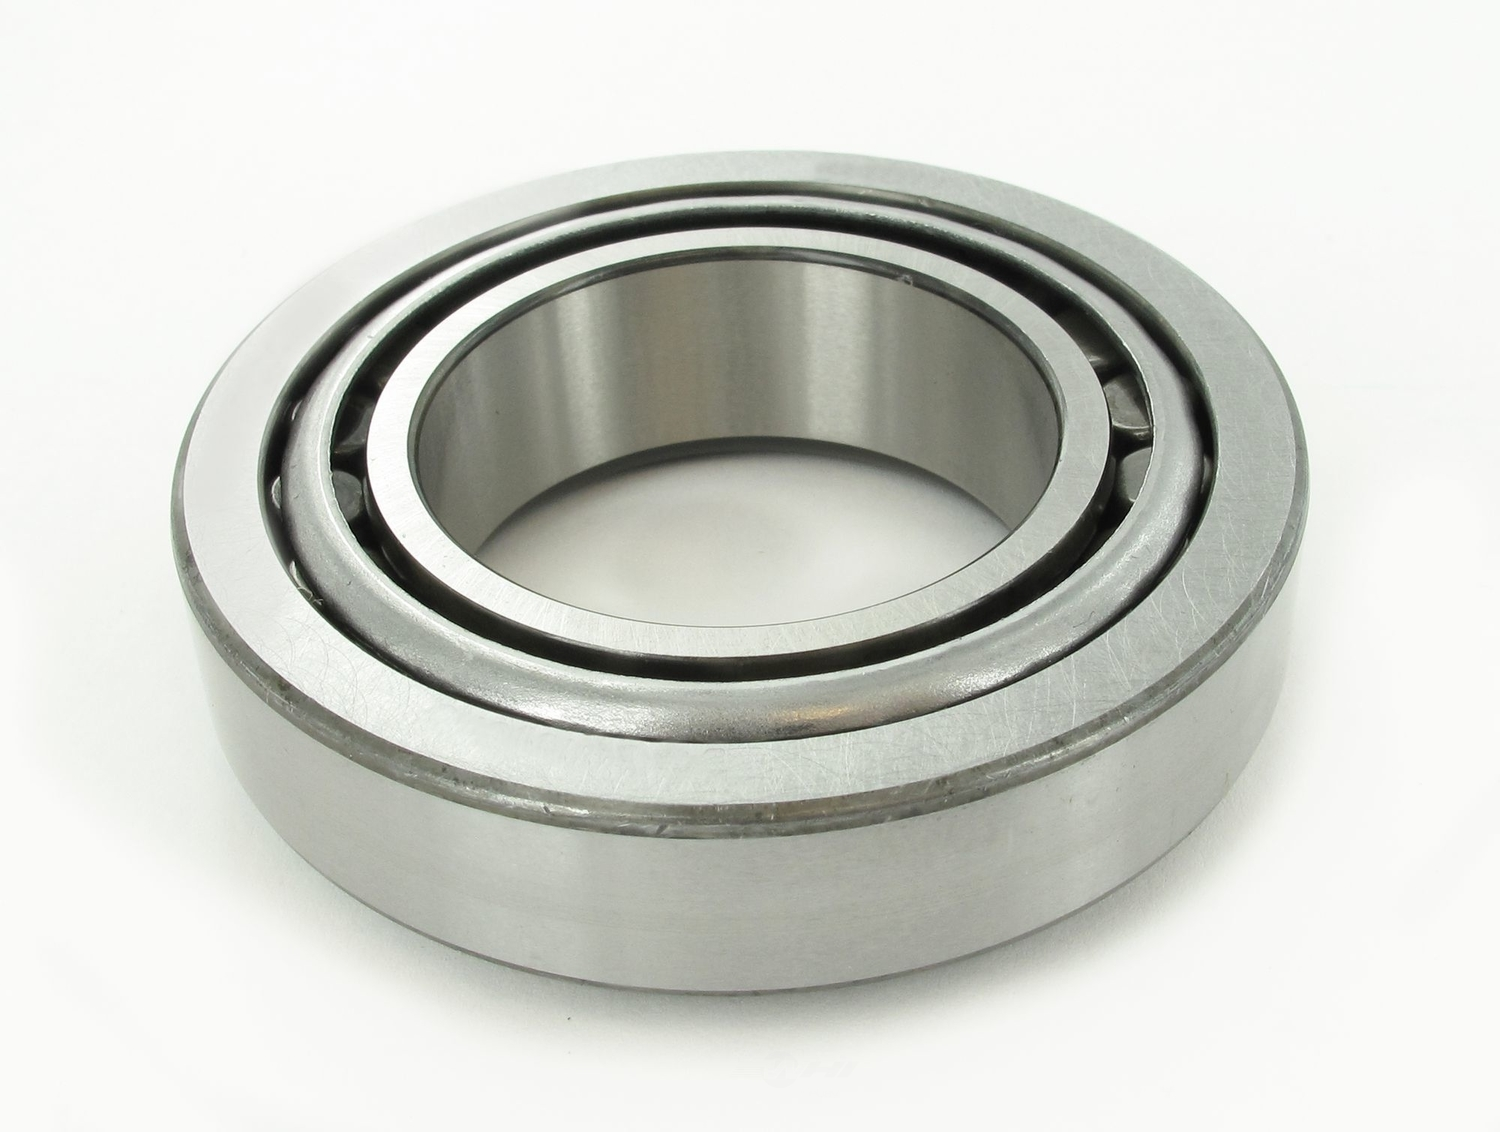 SKF (CHICAGO RAWHIDE) - Auto Trans Differential Bearing - SKF BR35